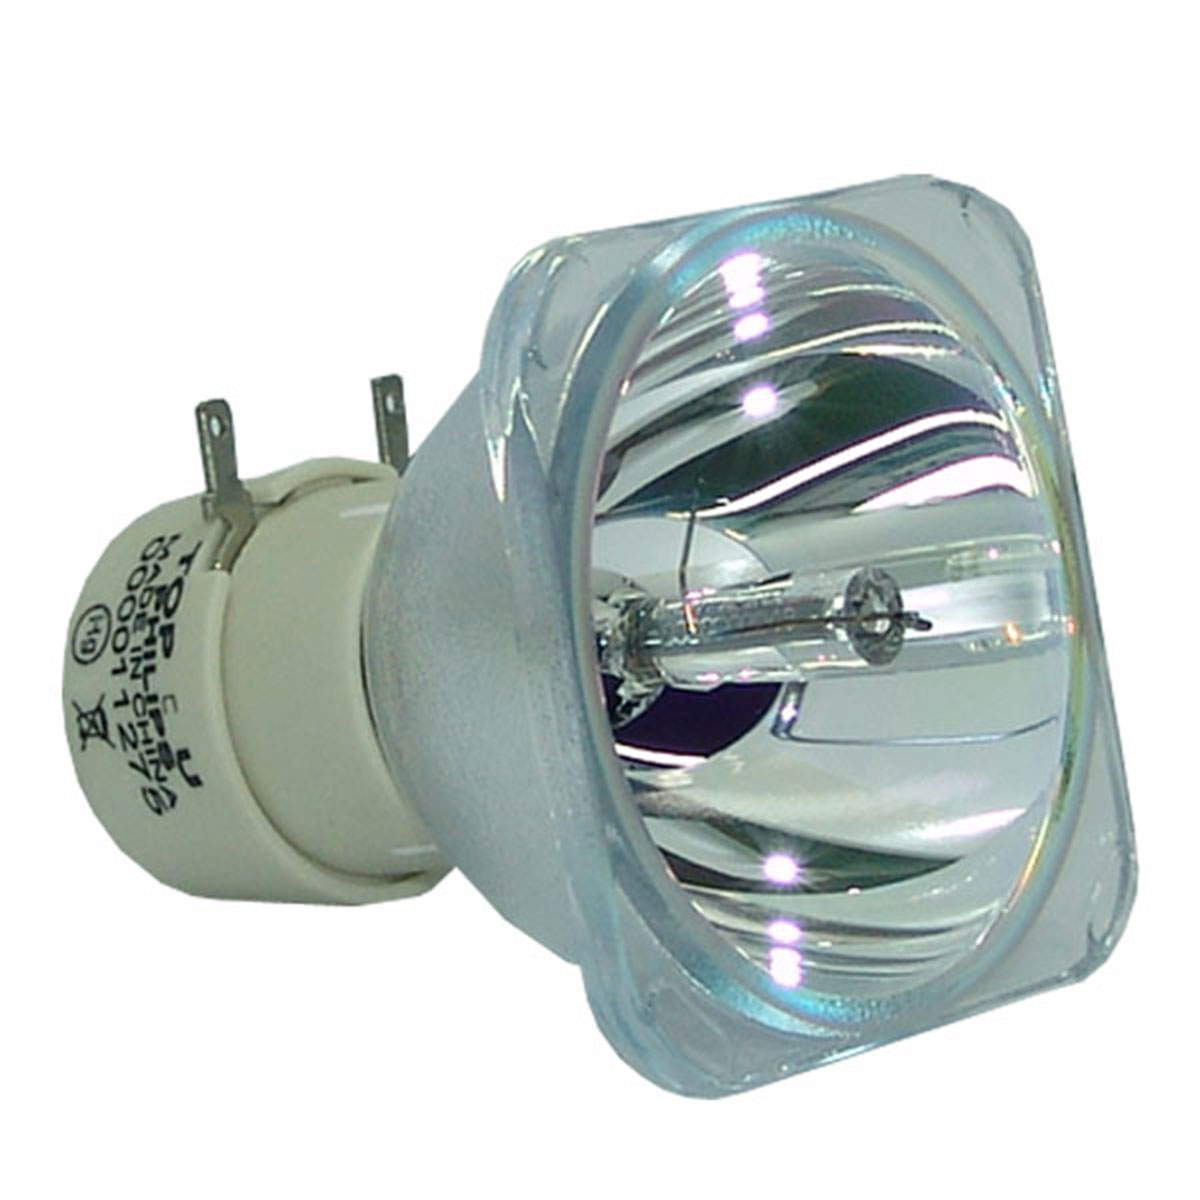 Original Philips Projector Lamp Replacement for BenQ MP514 (Bulb Only) - image 4 de 5